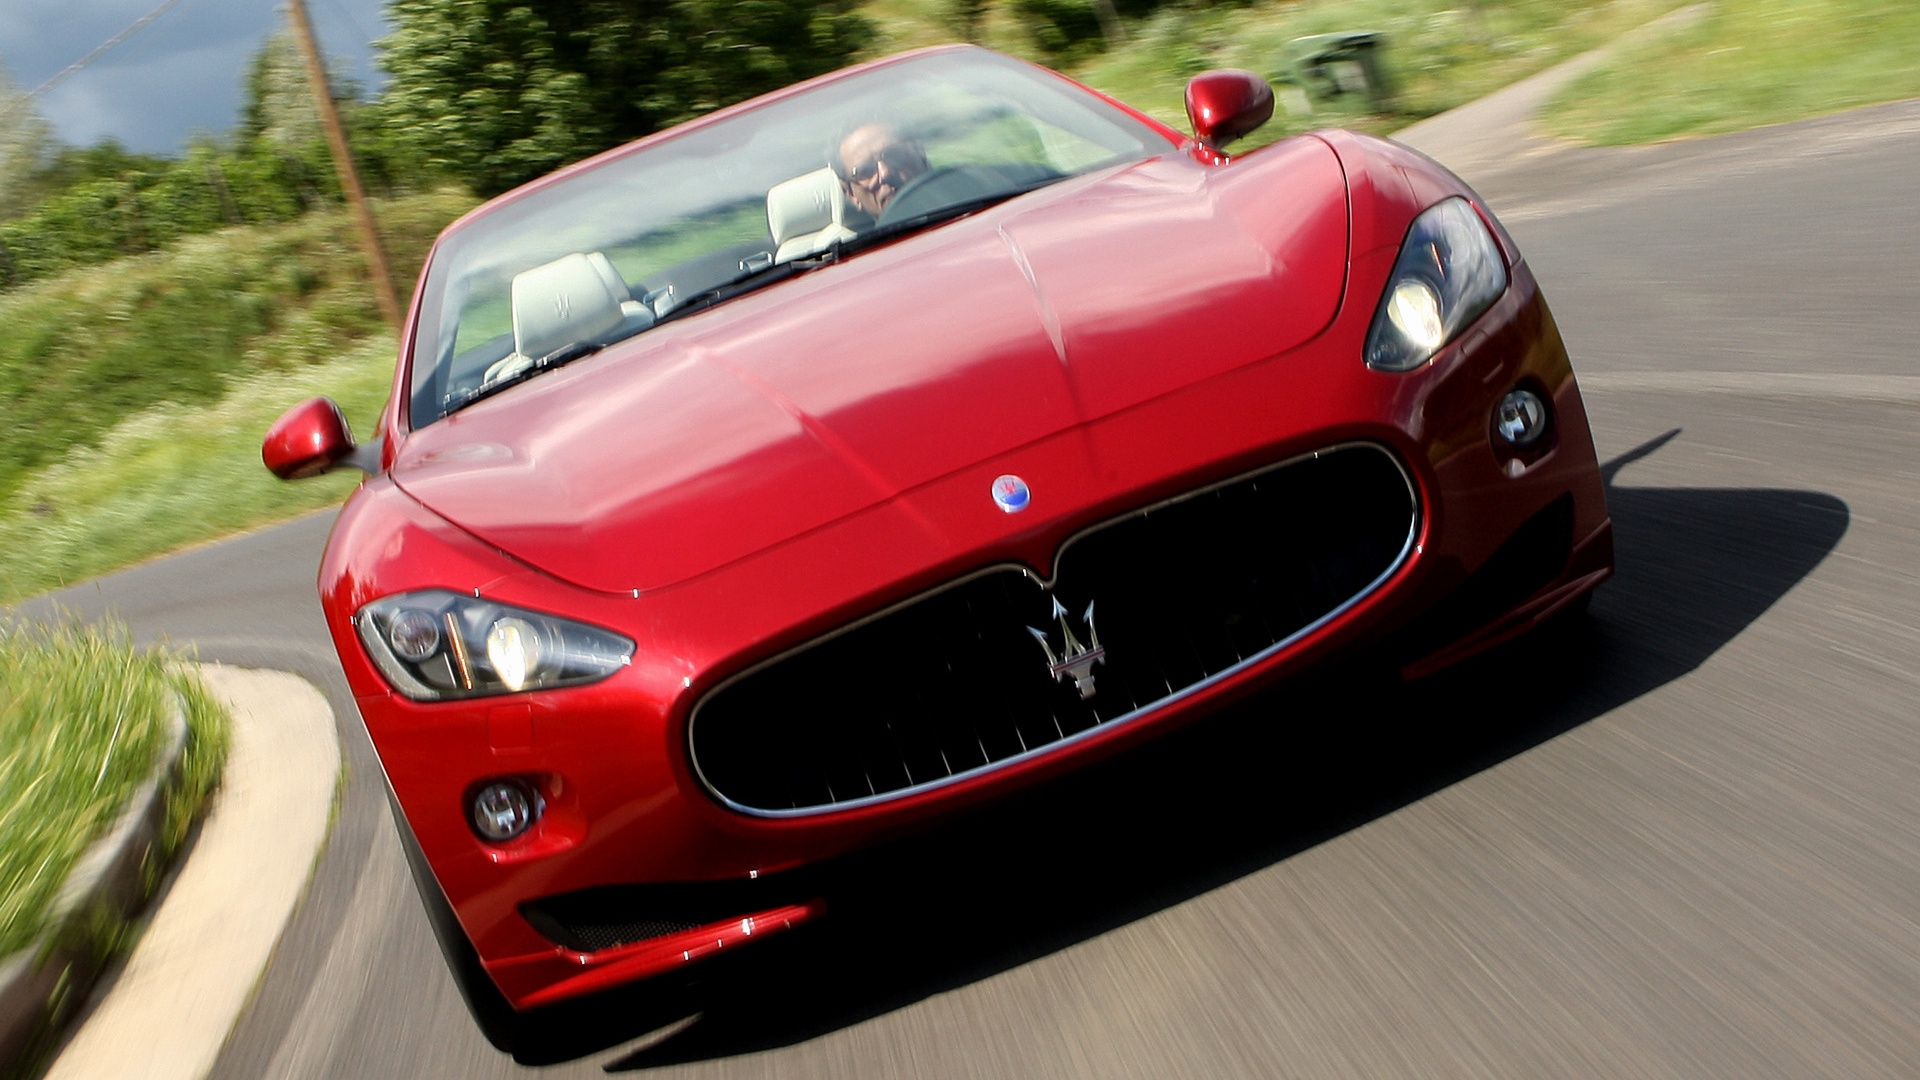 Maserati GranCabrio Sport (2011) Wallpapers and HD Images - Car Pixel